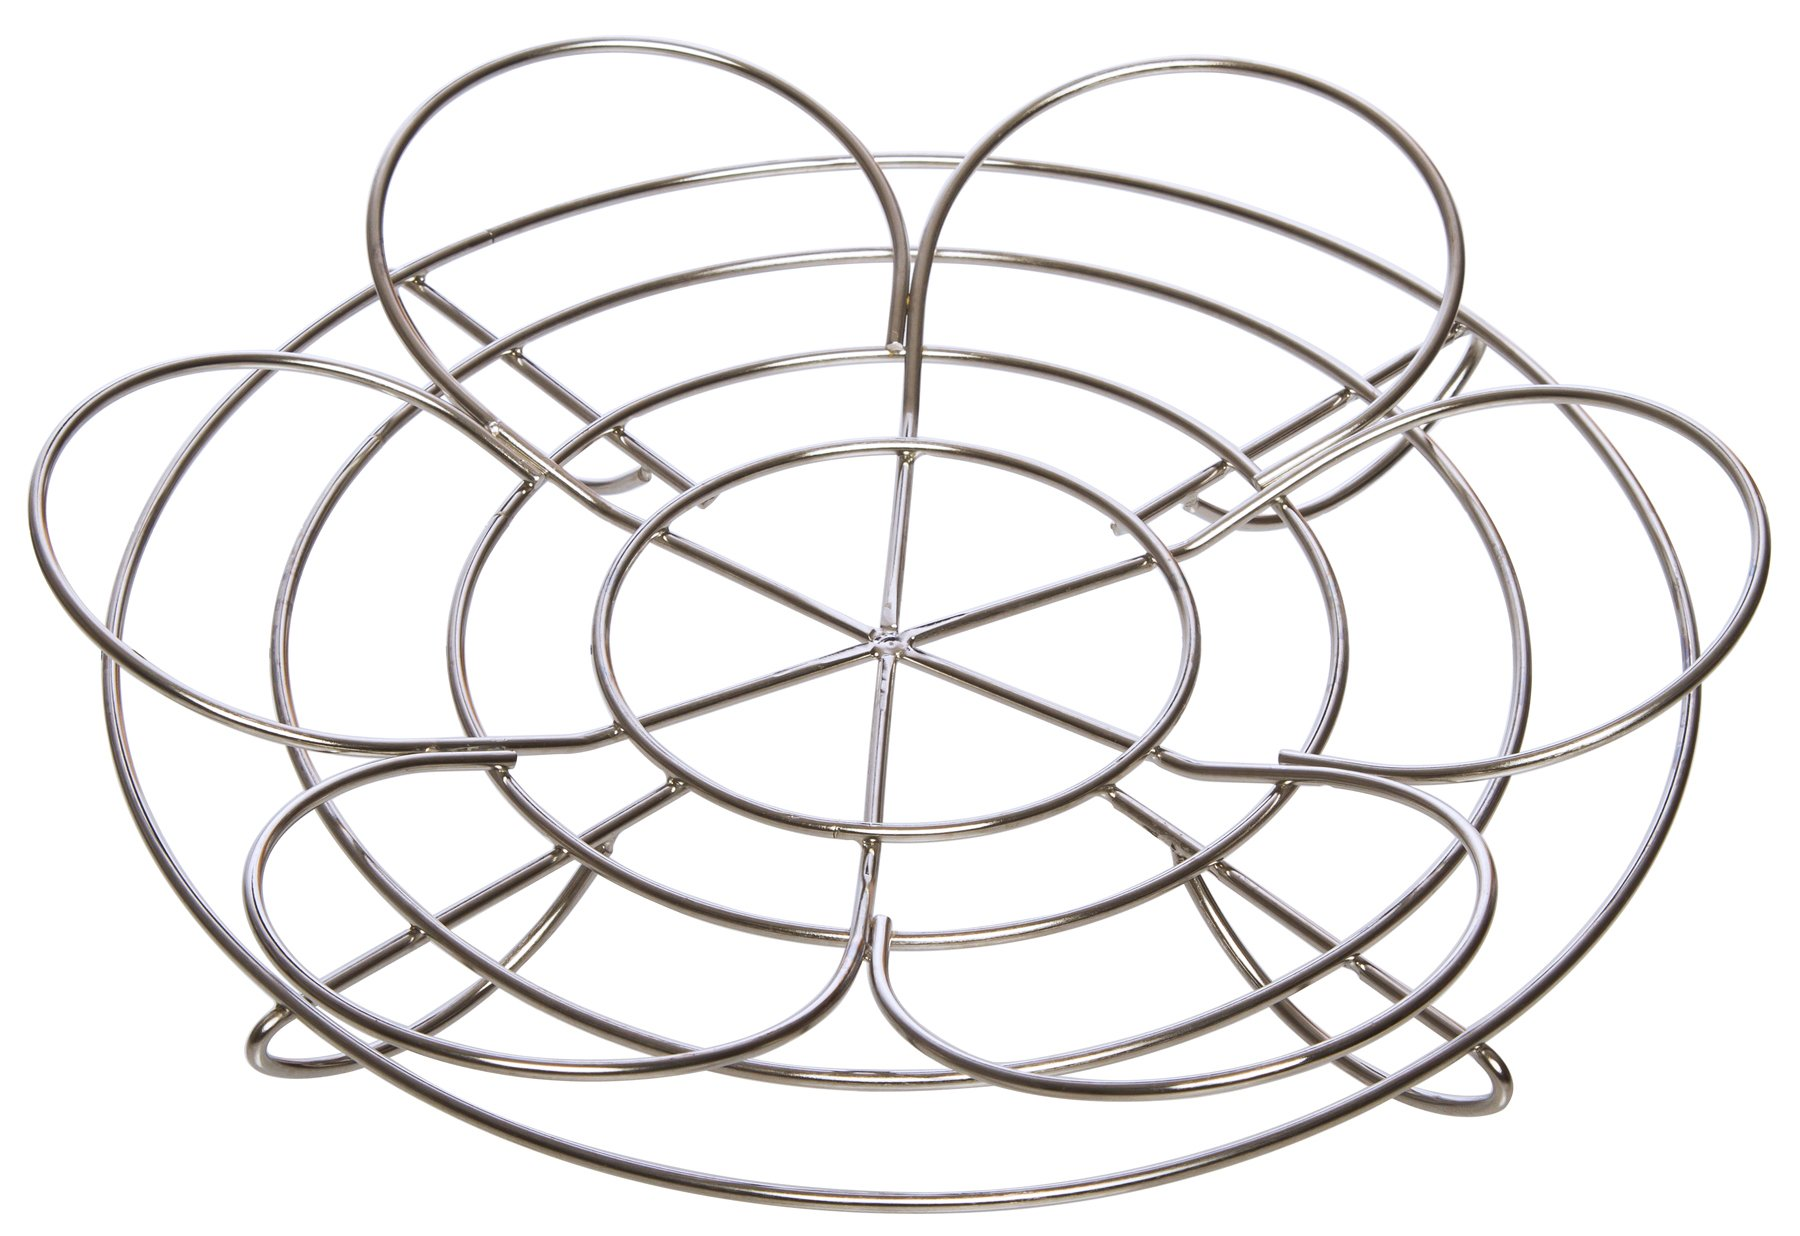 Prepworks by Progressive Reversible Stainless Steel Canning Rack by Progressive (Image #1)